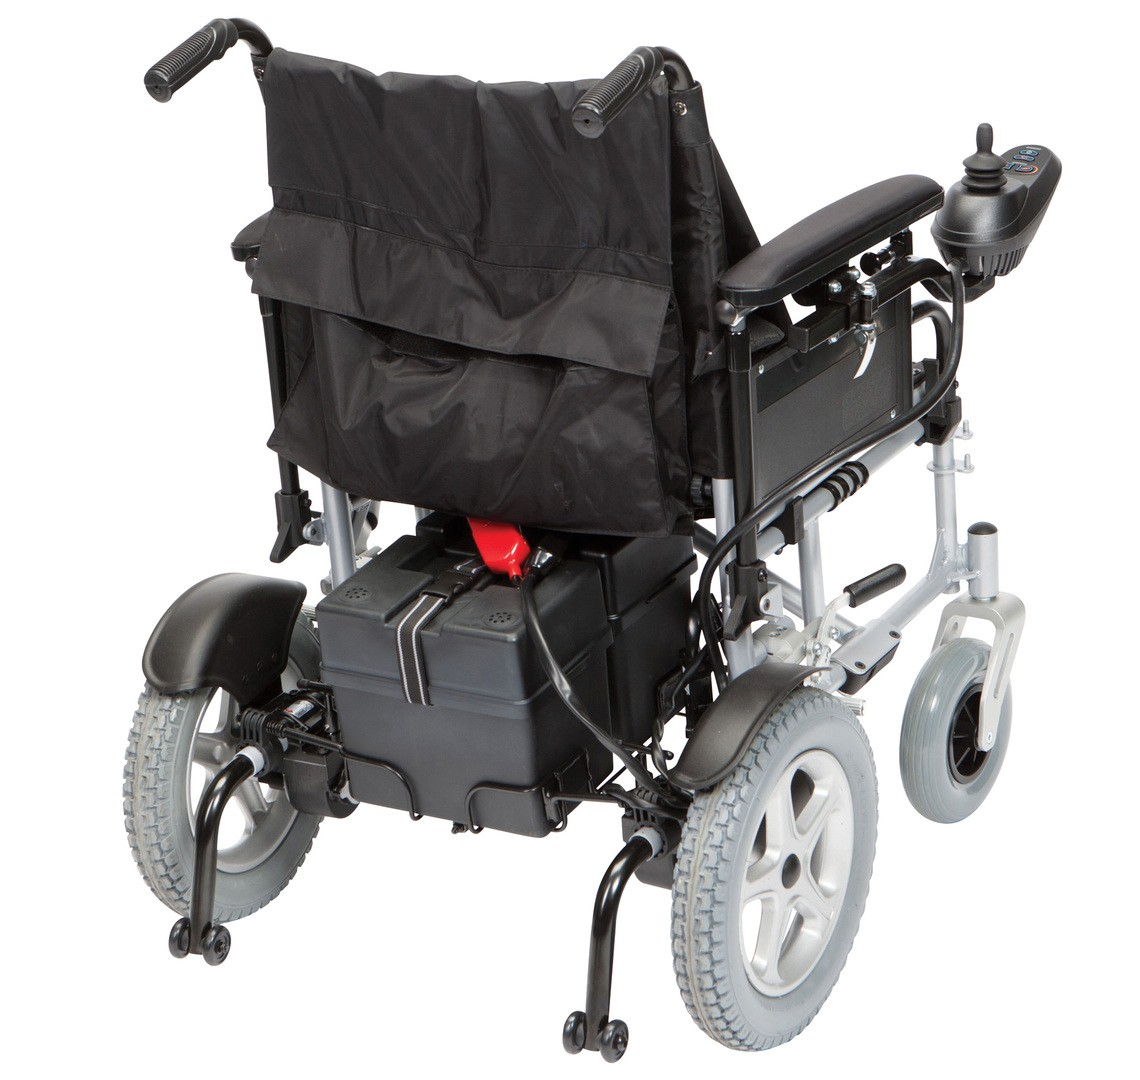 wheel chair prices baby high for eating cirrus powerchair and electric wheelchair at low